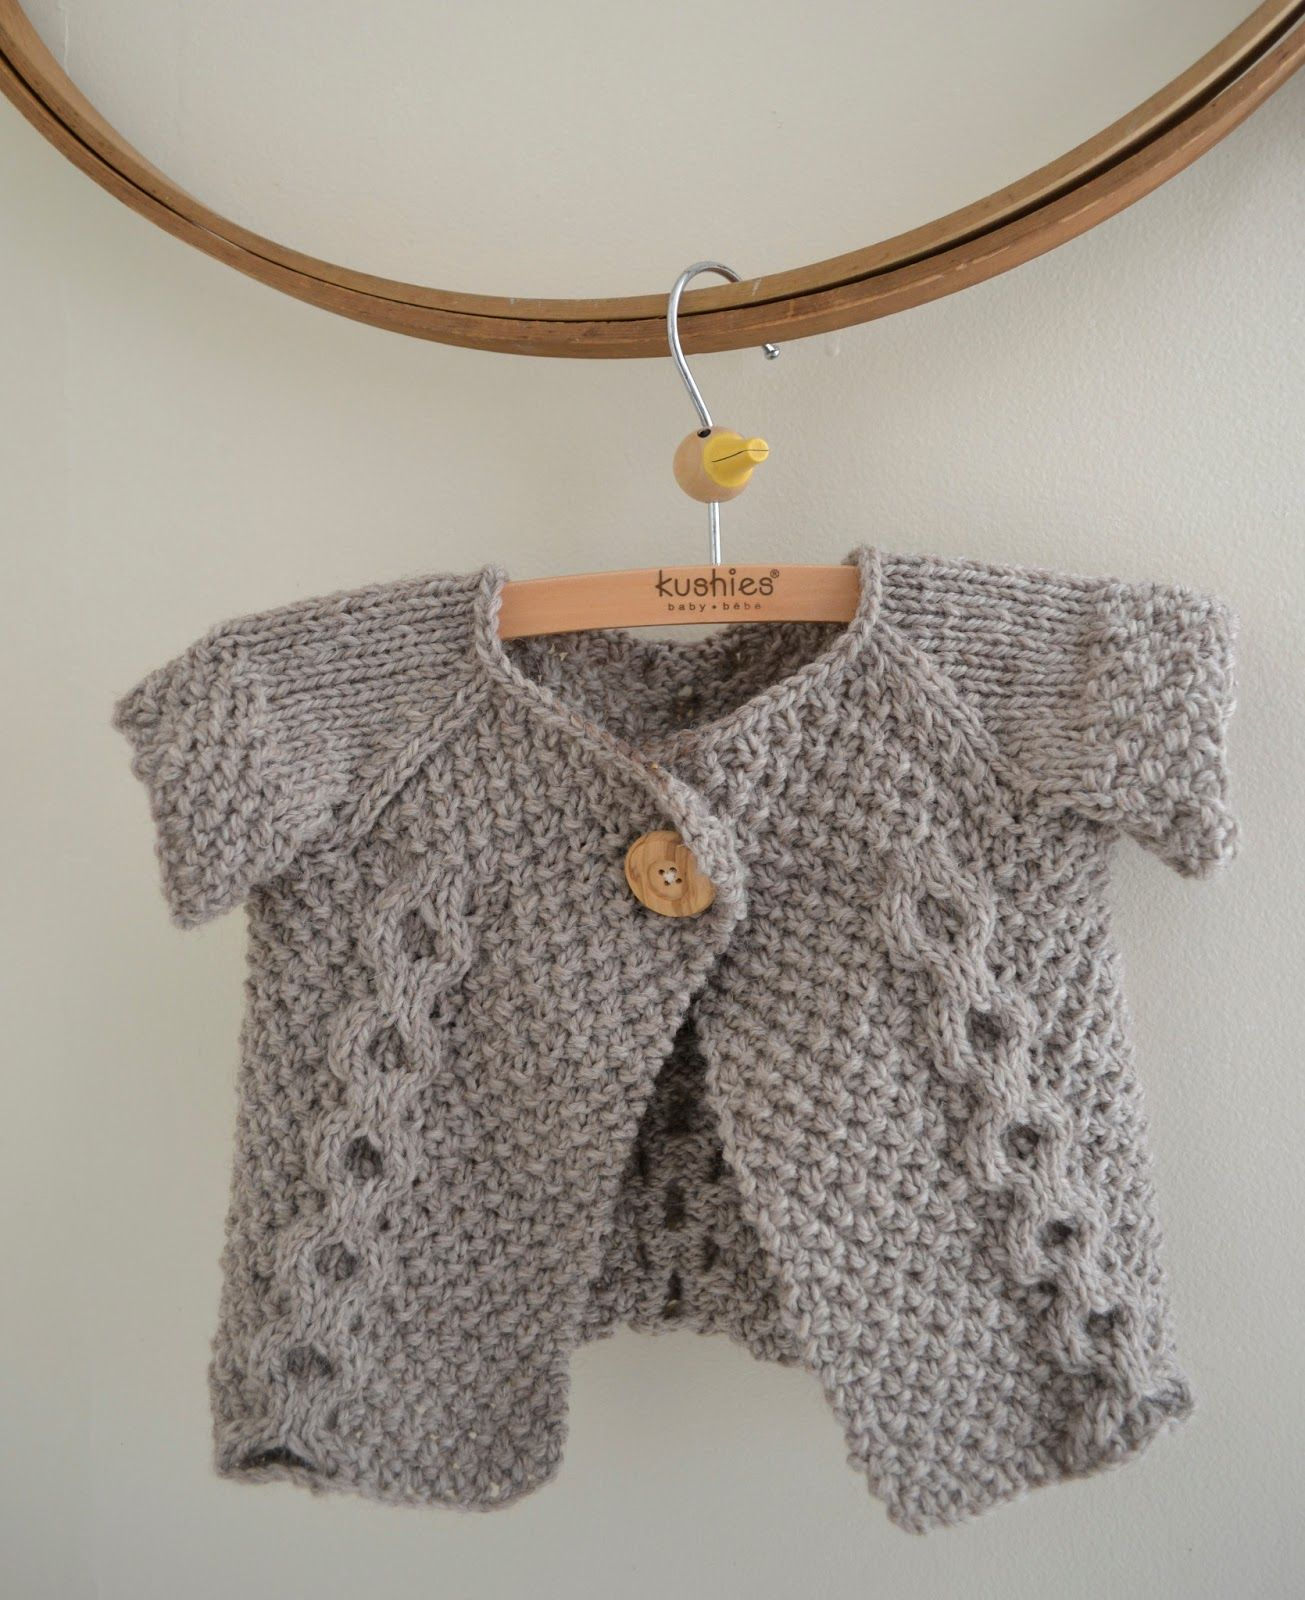 Double Knit Patterns Free : Top 10 Amazing Knitting Patterns Baby sweaters and Free pattern